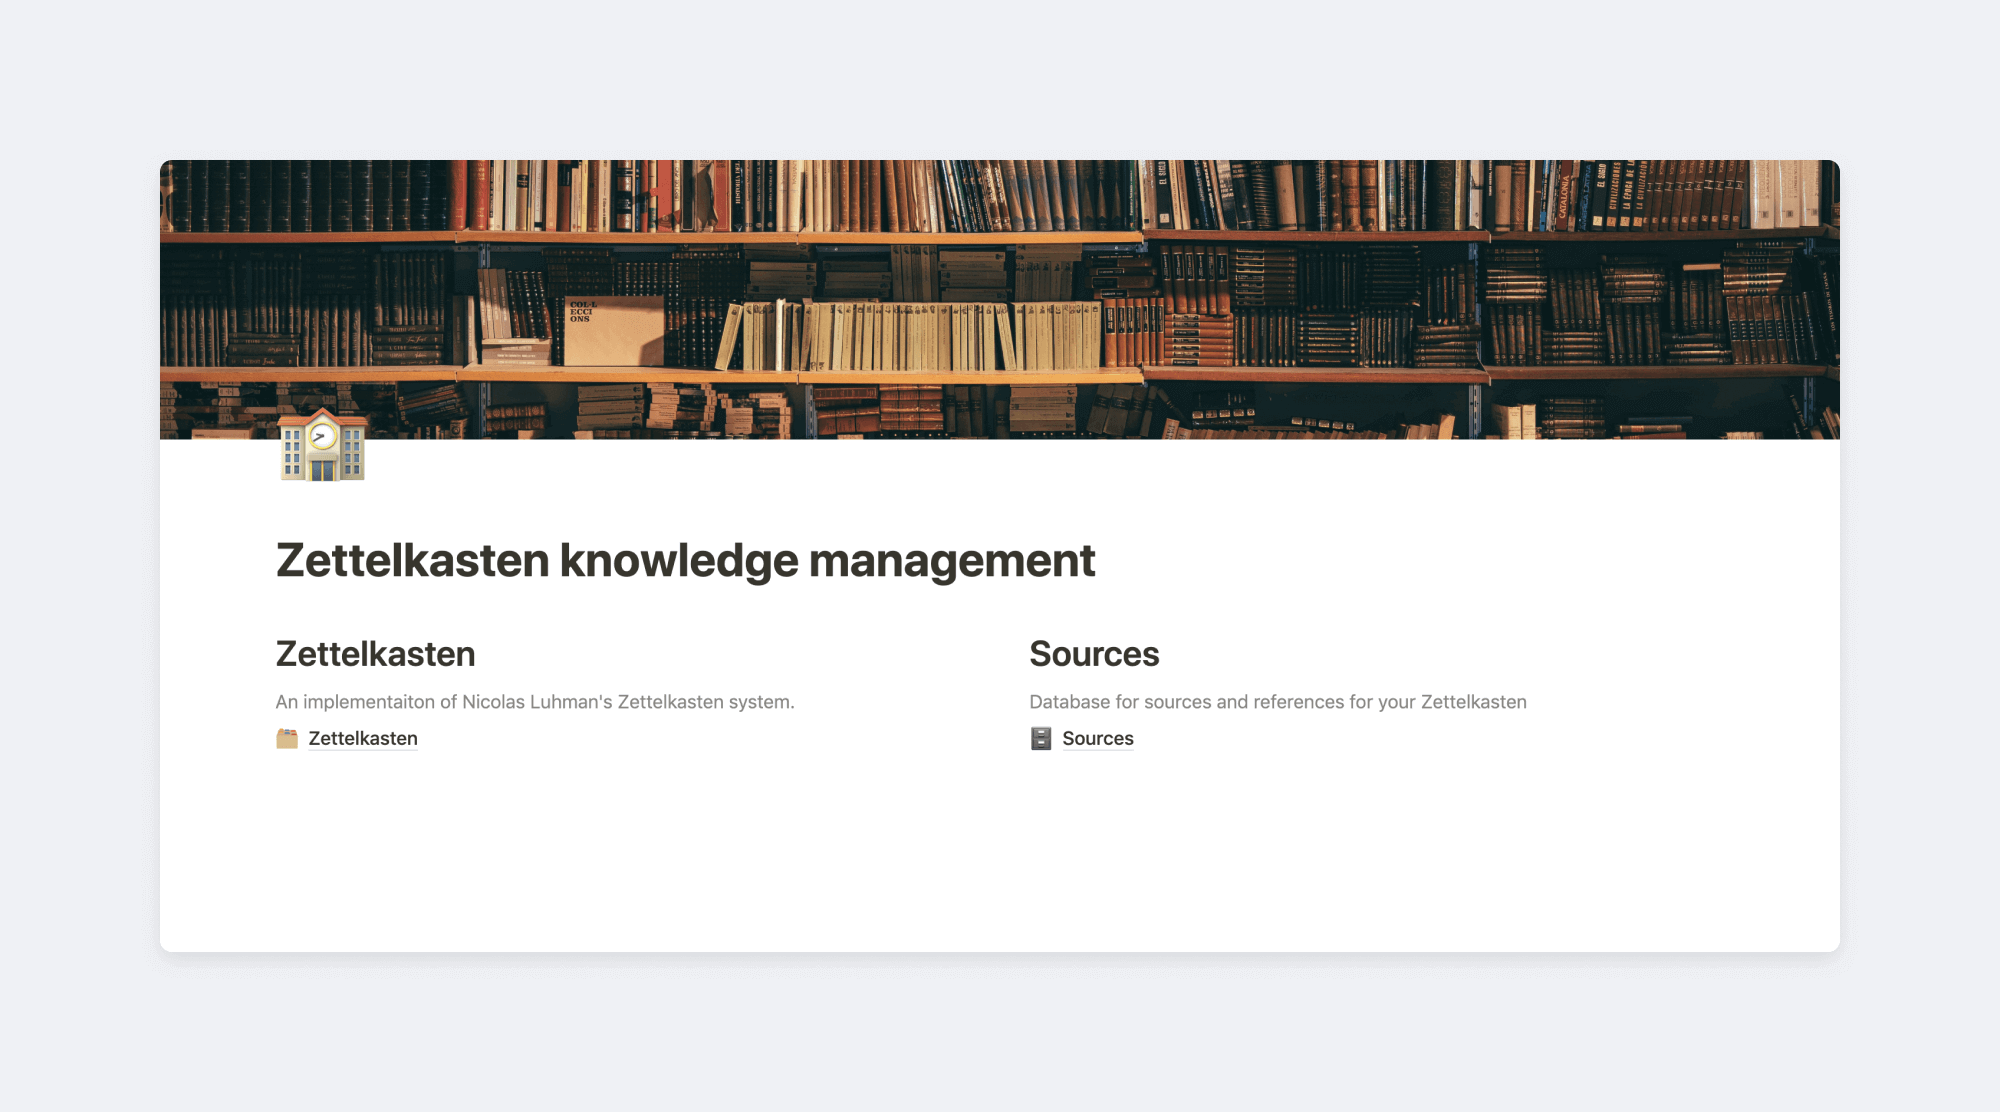 Zettelkasten knowledge management